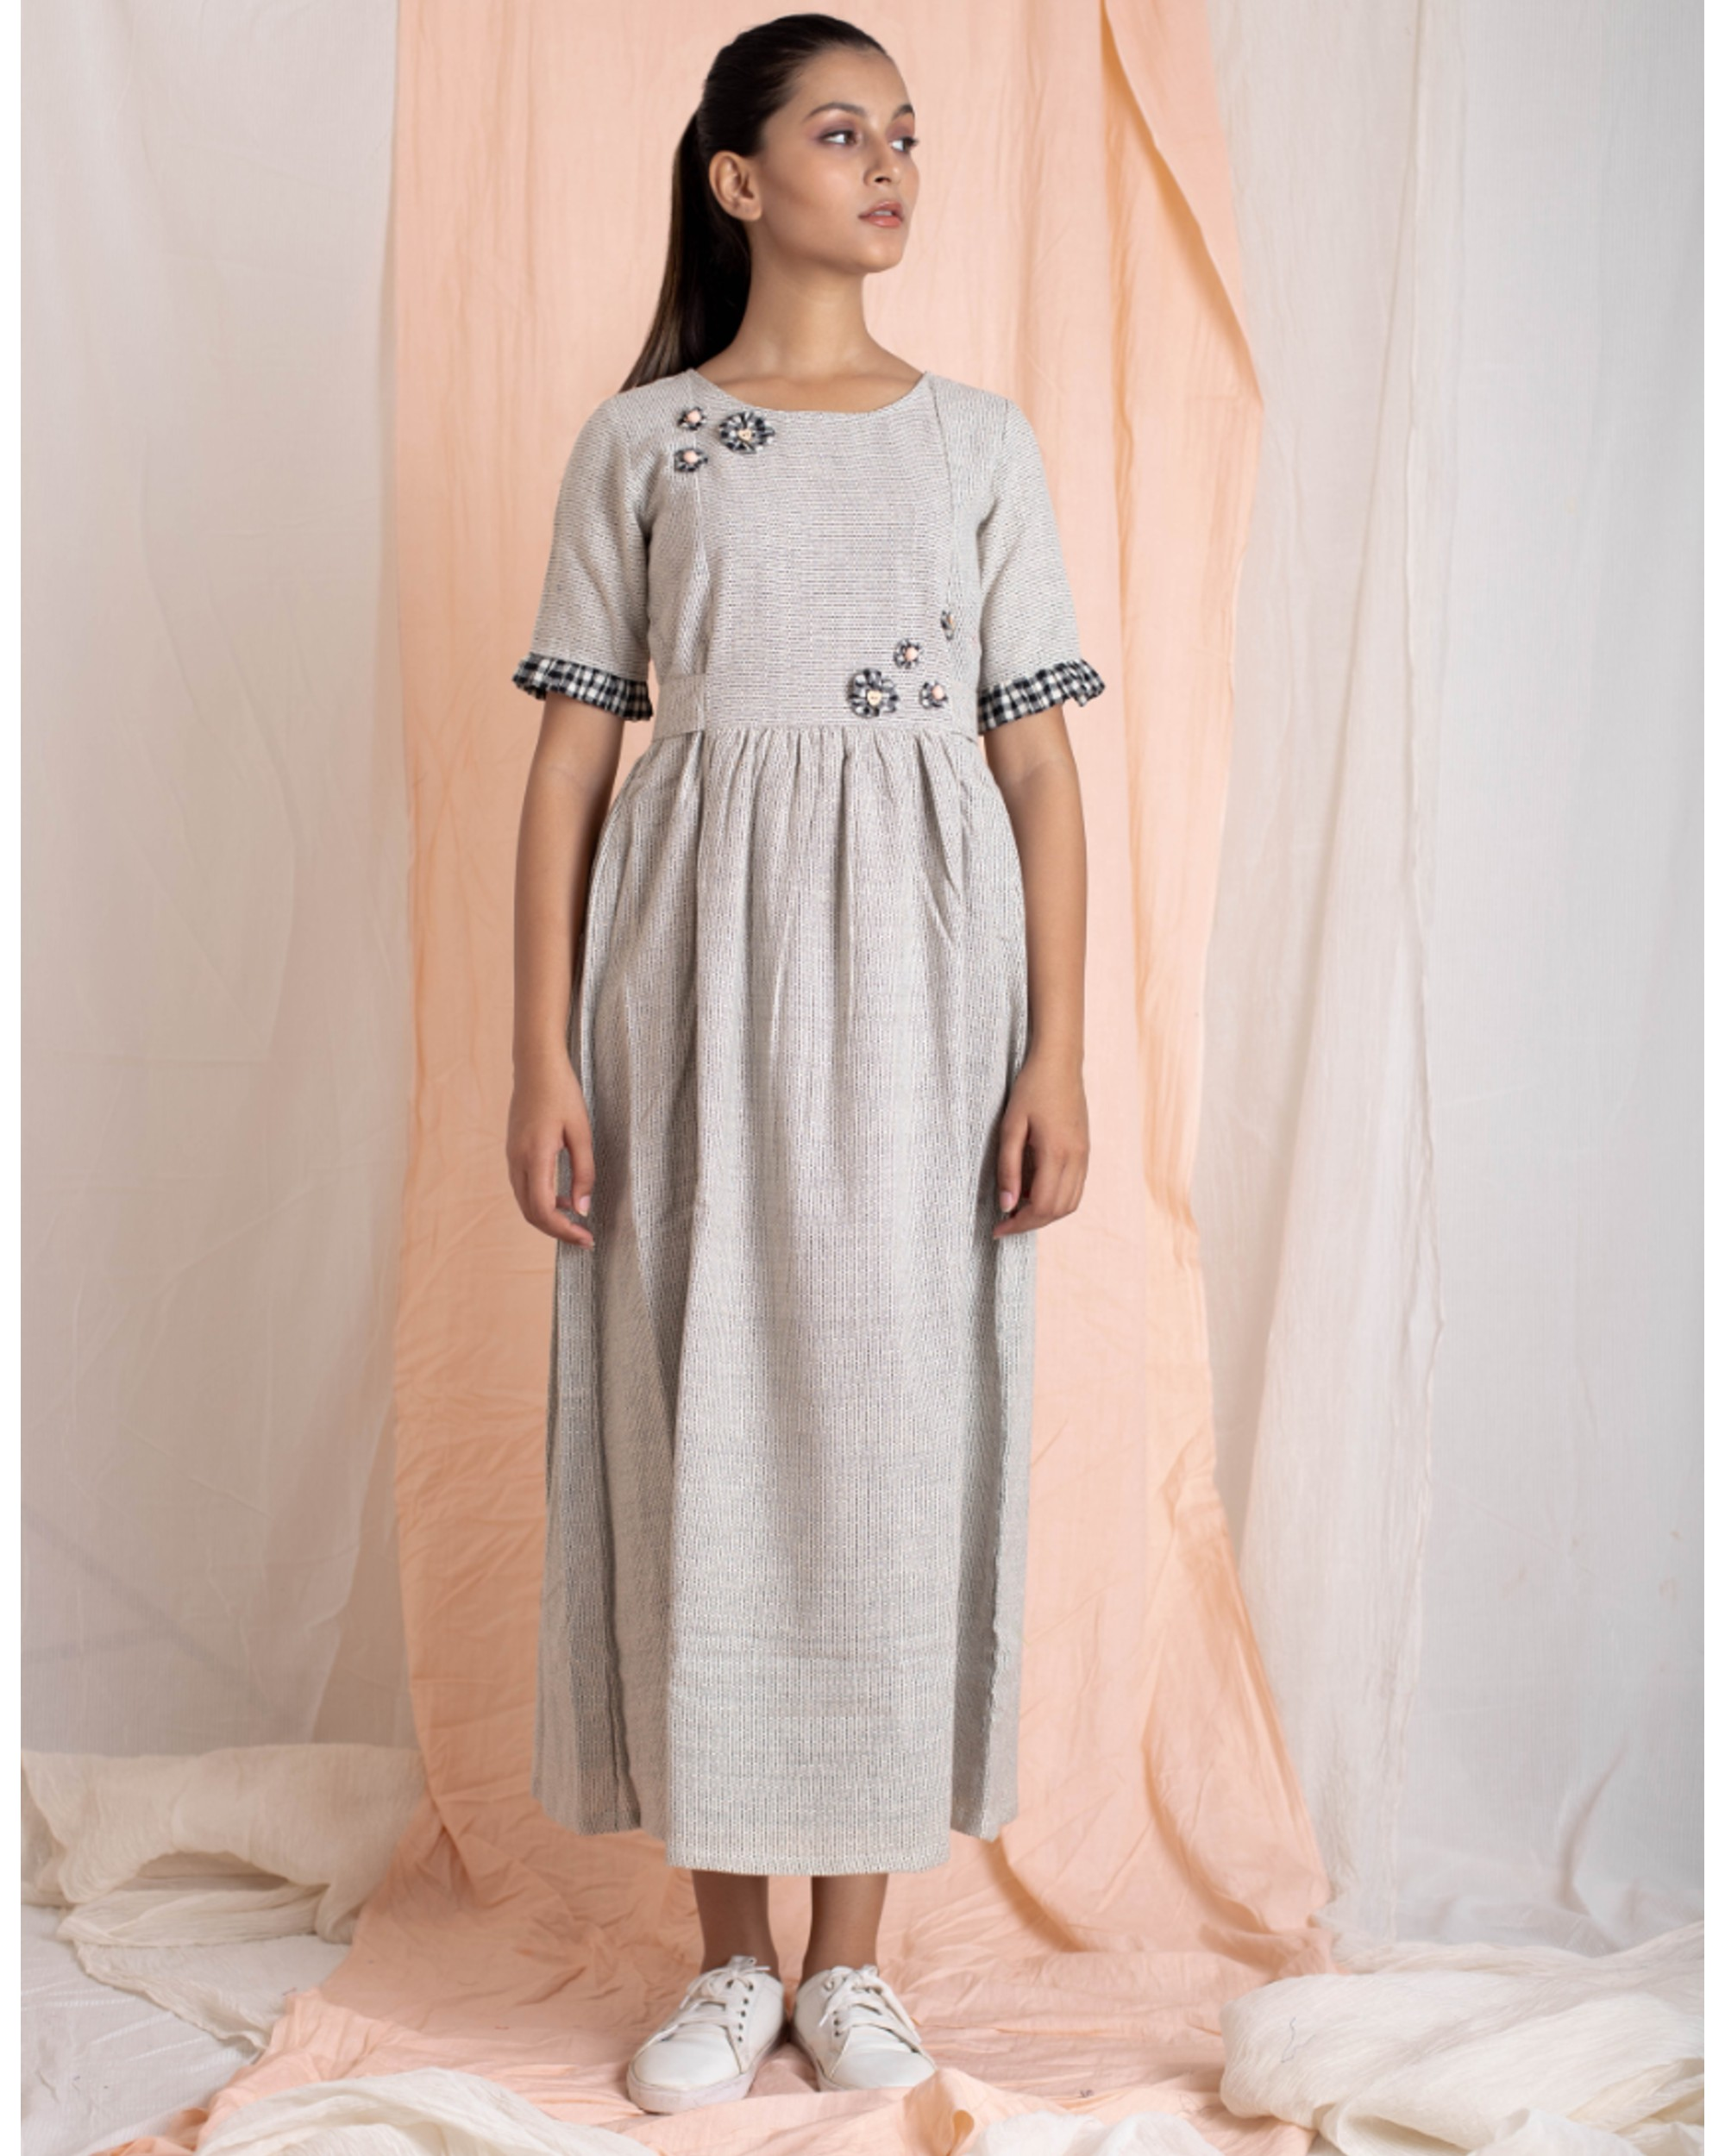 Light grey hand-woven gathered dress with applique work